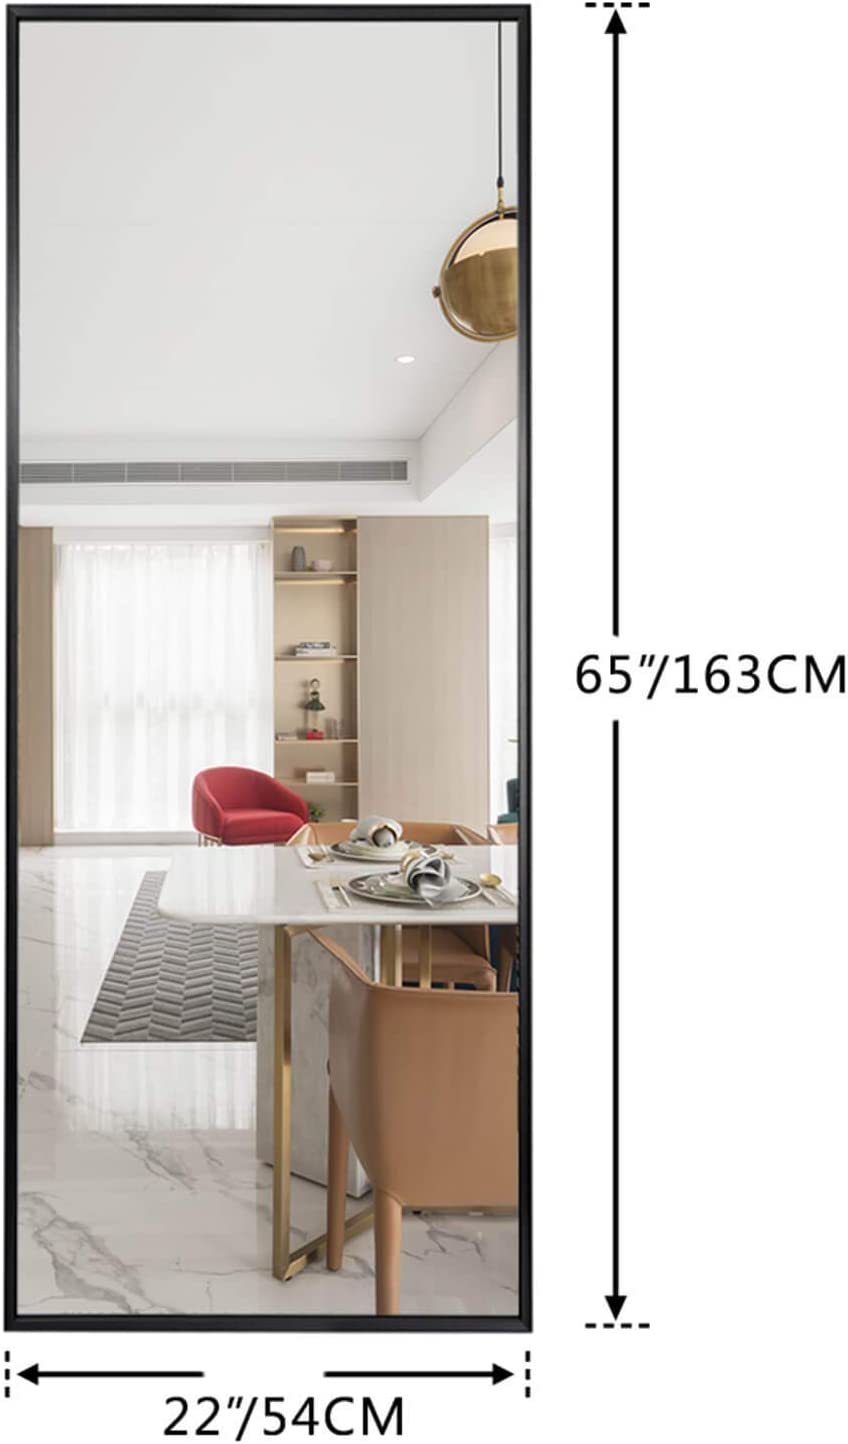 SELF Full Length Floor Mirror 65x22 Large Rectangle Wall Mirror Standing Hanging or Leaning Against Wall for Bedroom Dressing and Wall-Mounted Thin Frame Mirror Elegant Black